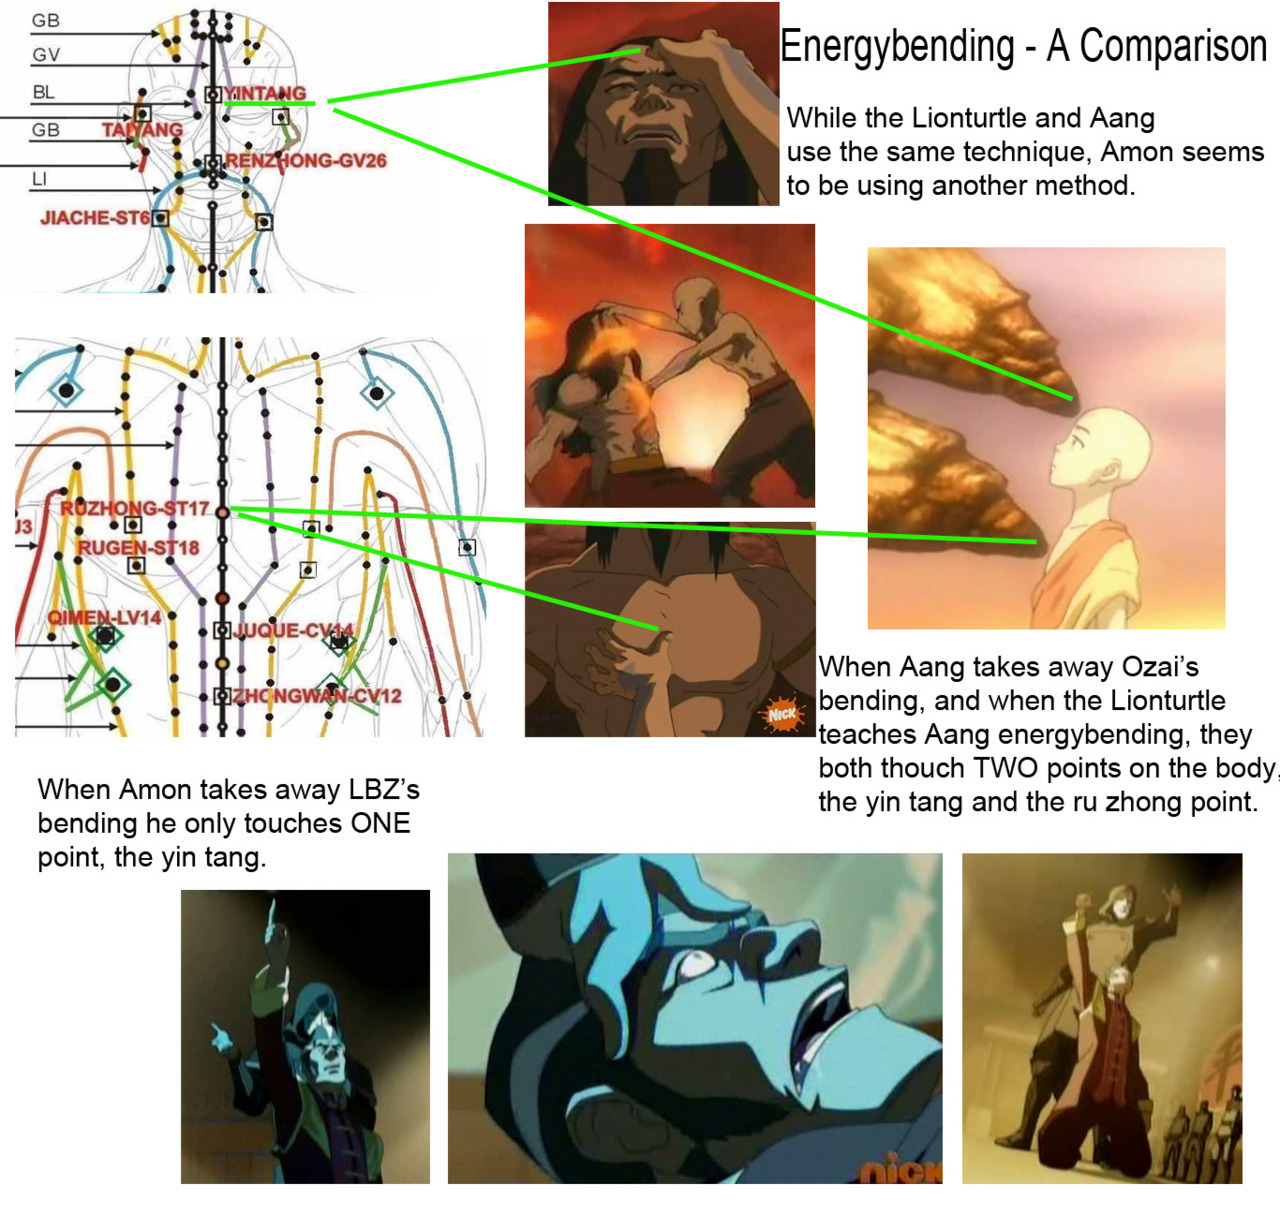 atla-annotated:  Energybending - A Comparison While the Lionturtle and Aang use the same technique, Amon seems to be using another method. When Aang takes away Ozai's bending, and when the Lionturtle teaches Aang energybending, they both thouch TWO points on the body, the yin tang and the ru zhong point aka the Ajna chakra and the Anahata chakra.  When Amon 'takes away' LBZ's bending, he only touches ONE point, the yin tang. Now what could that mean? I think Amon is faking it. That he is making people believe that he is taking away their bending, when what he is actually doing is blocking a chakra. Here is why: Amon touches the yin tang point aka the Ajna chakra:  Yintang Acupuncture Point         Location: Midway between the medial ends of the eyebrows  Actions& Effects: Calms the spirit - insomnia, anxiety, stress. Frontal headache. Sinus issues - congestion, sinusitis.       When Uncle is teaching Zuko about lightning, he talks about bending needing a certain amount of inner calm. So, if you were to close that chakra and lock all the anxiety inside someone, making them incapable of being calm, that would effectively take someone's bending away. Quite clever actually, since the more terrified they are/become the more permanent this block will be. And Amon is sure laying it on thick. Note: This also means one should be able to undo it. Which is good, considering some of the promos we've seen. Ru zhong, Ajna chakra, Anahata chakra. Image source: One